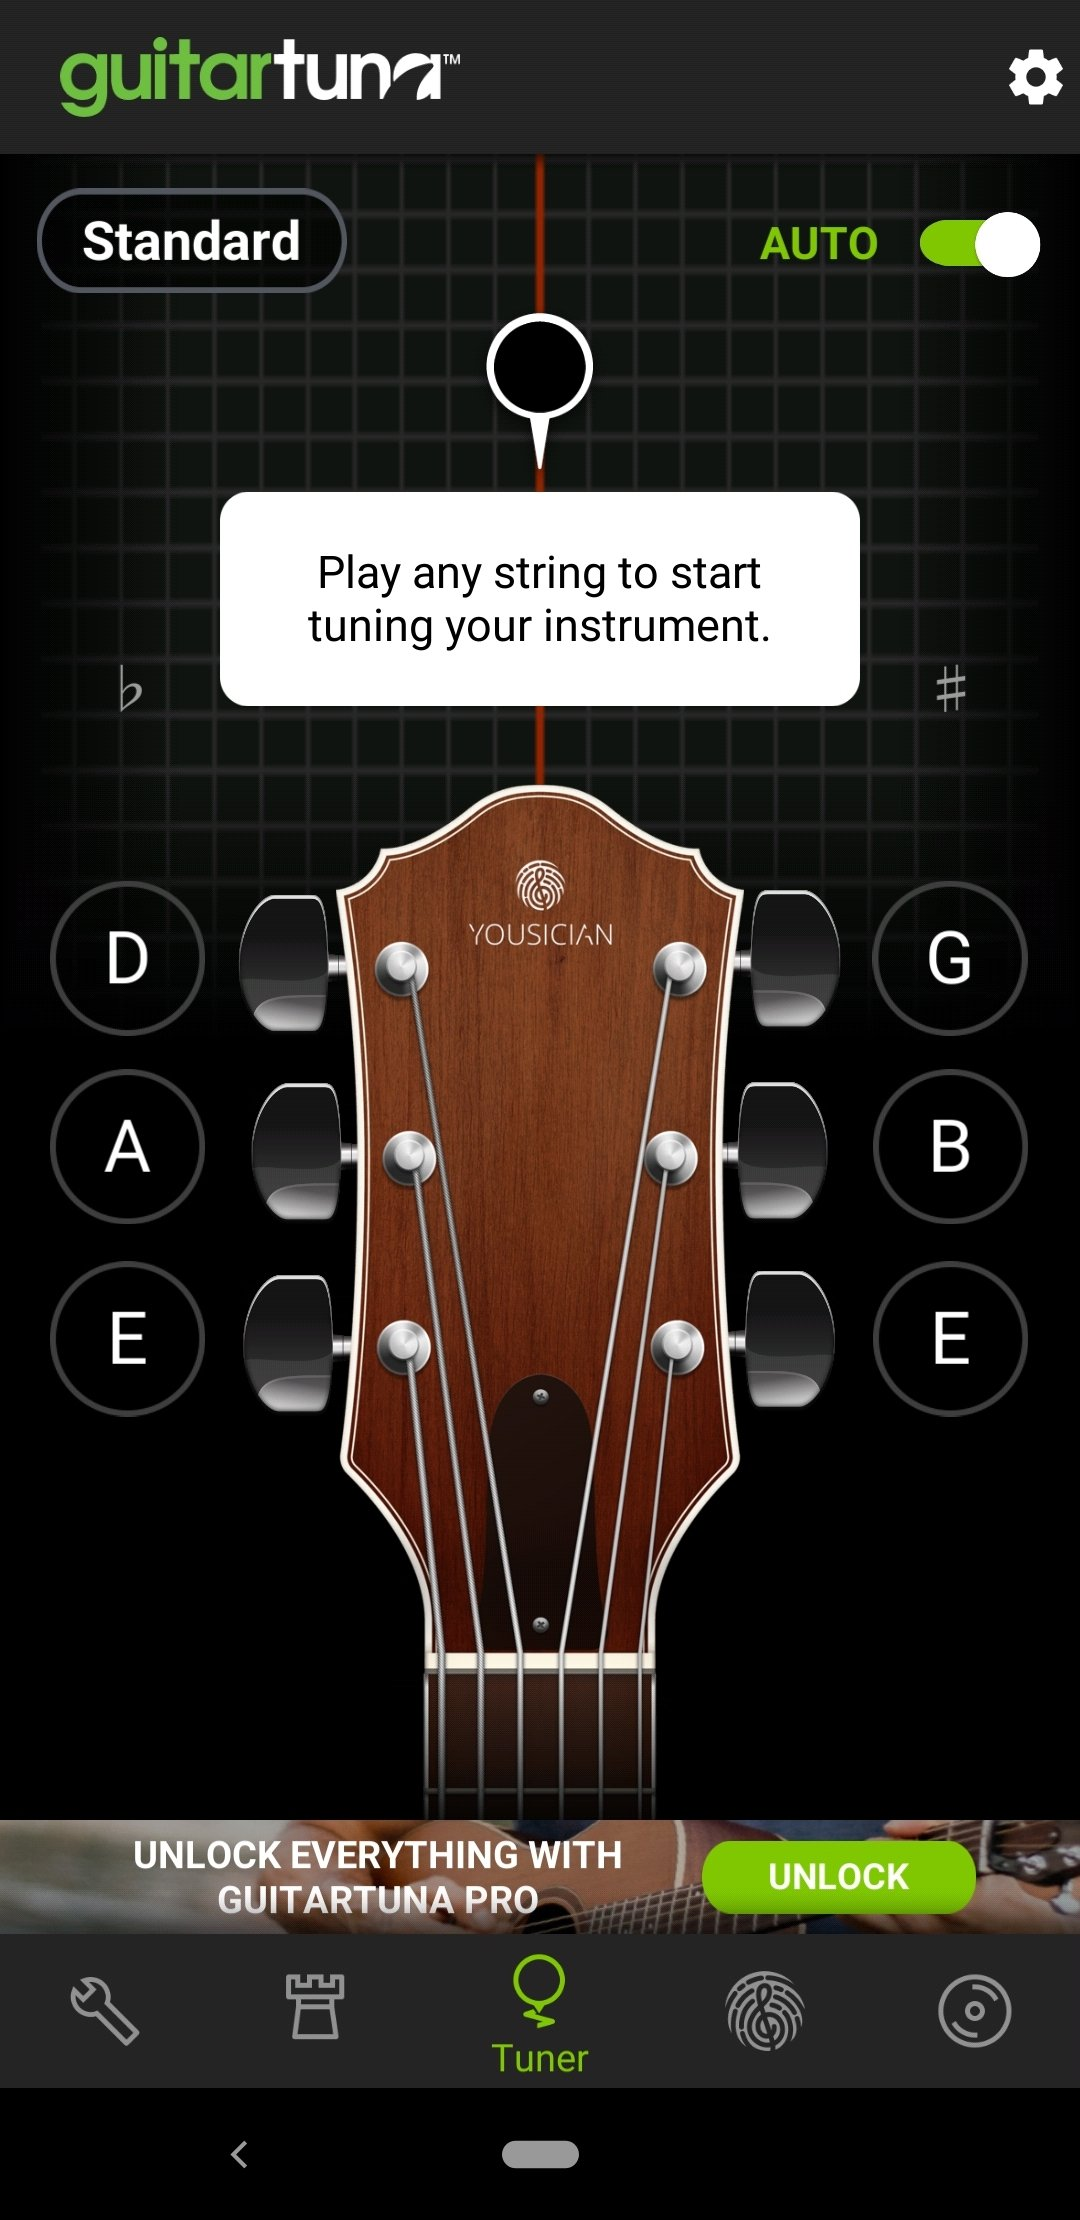 Accordeur guitares GuitarTuna Android image 5